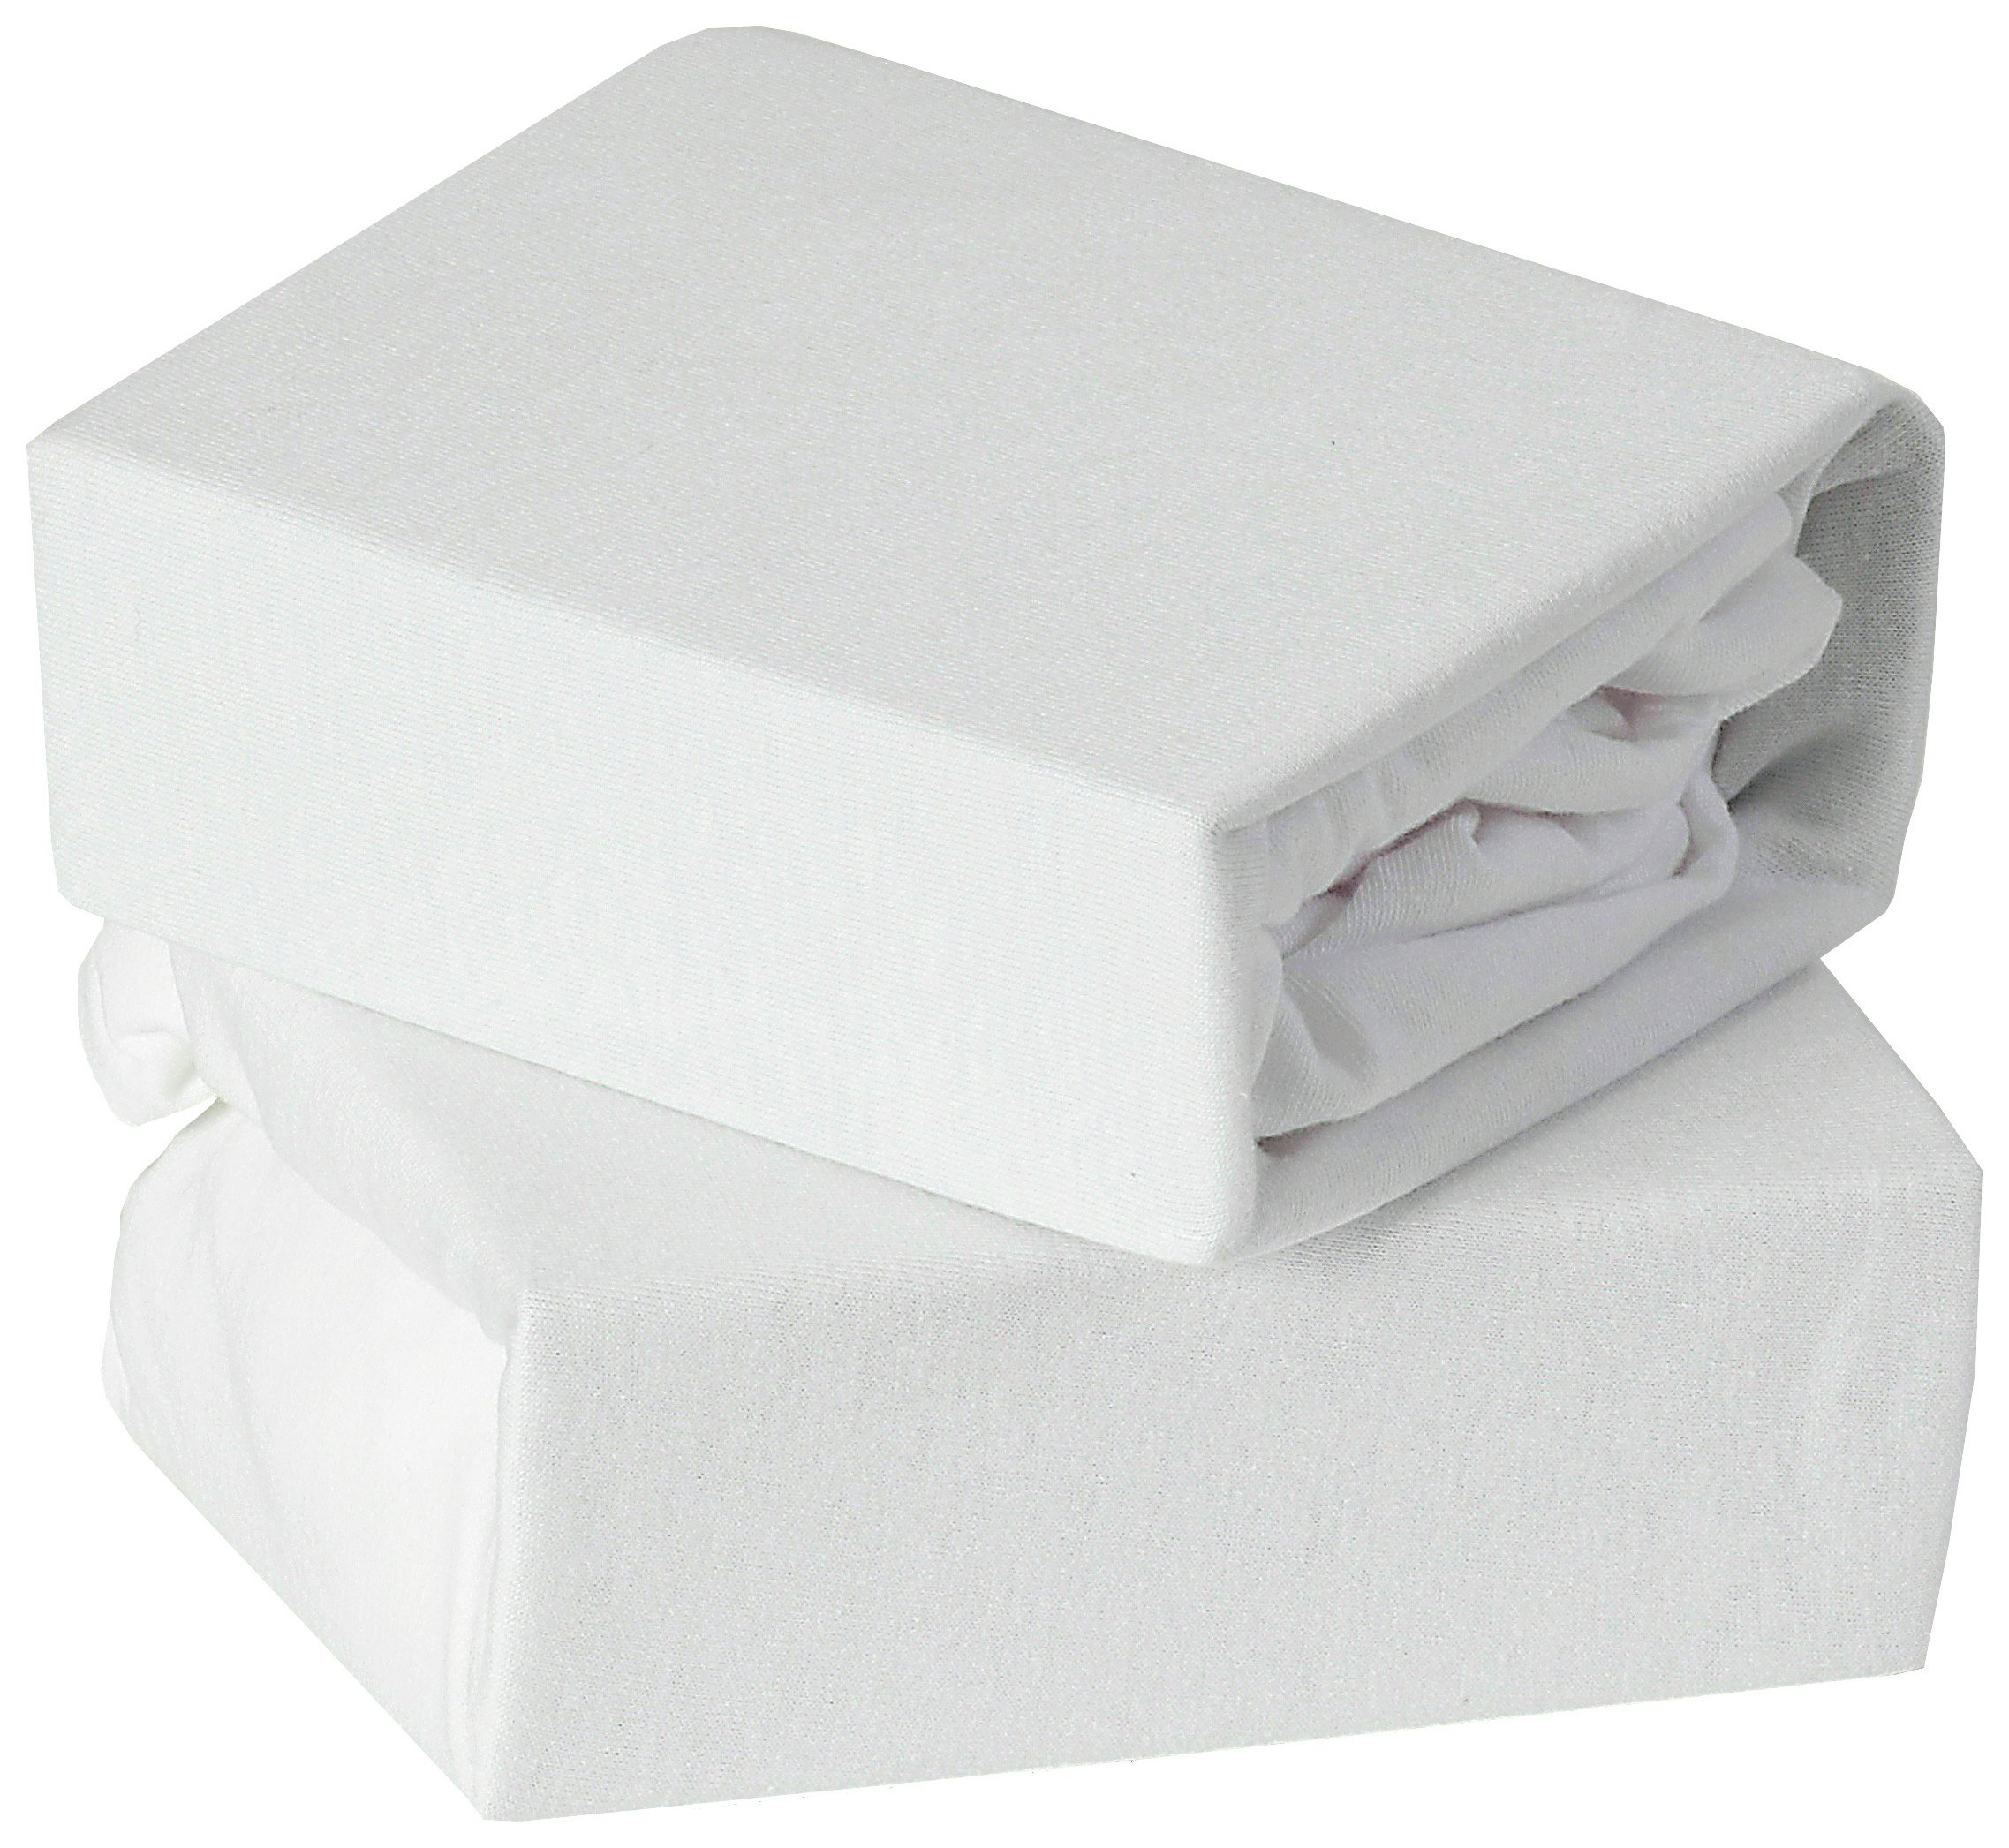 Image of Baby Elegance 2 Pack Fitted Cot Bed Sheets - White.